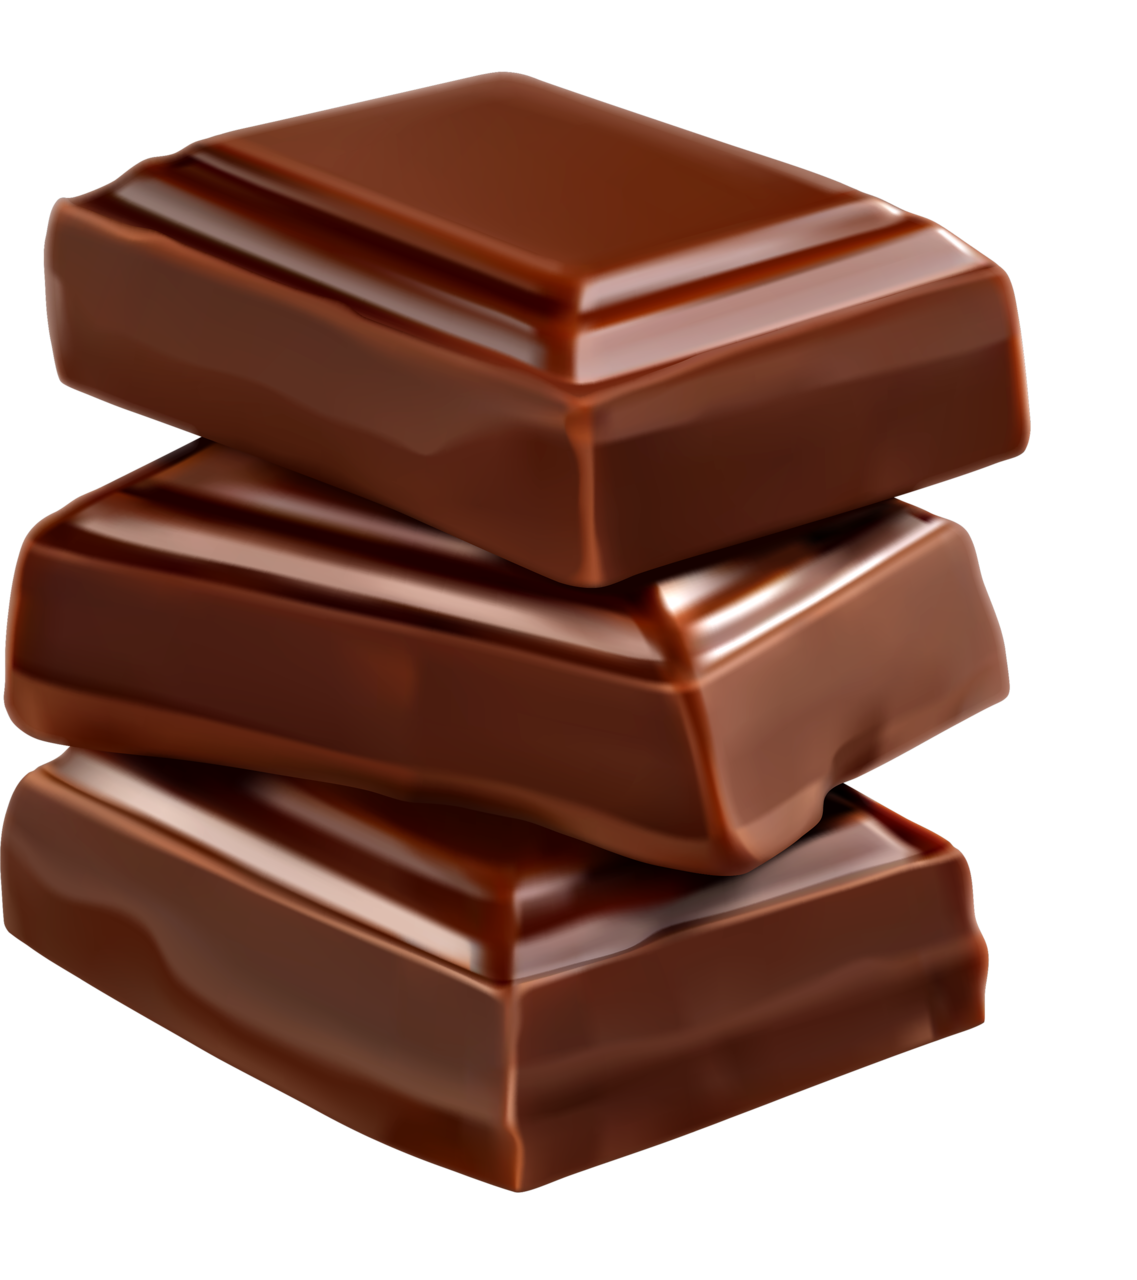 Melting vector chocolate day. Png chocolat pinterest